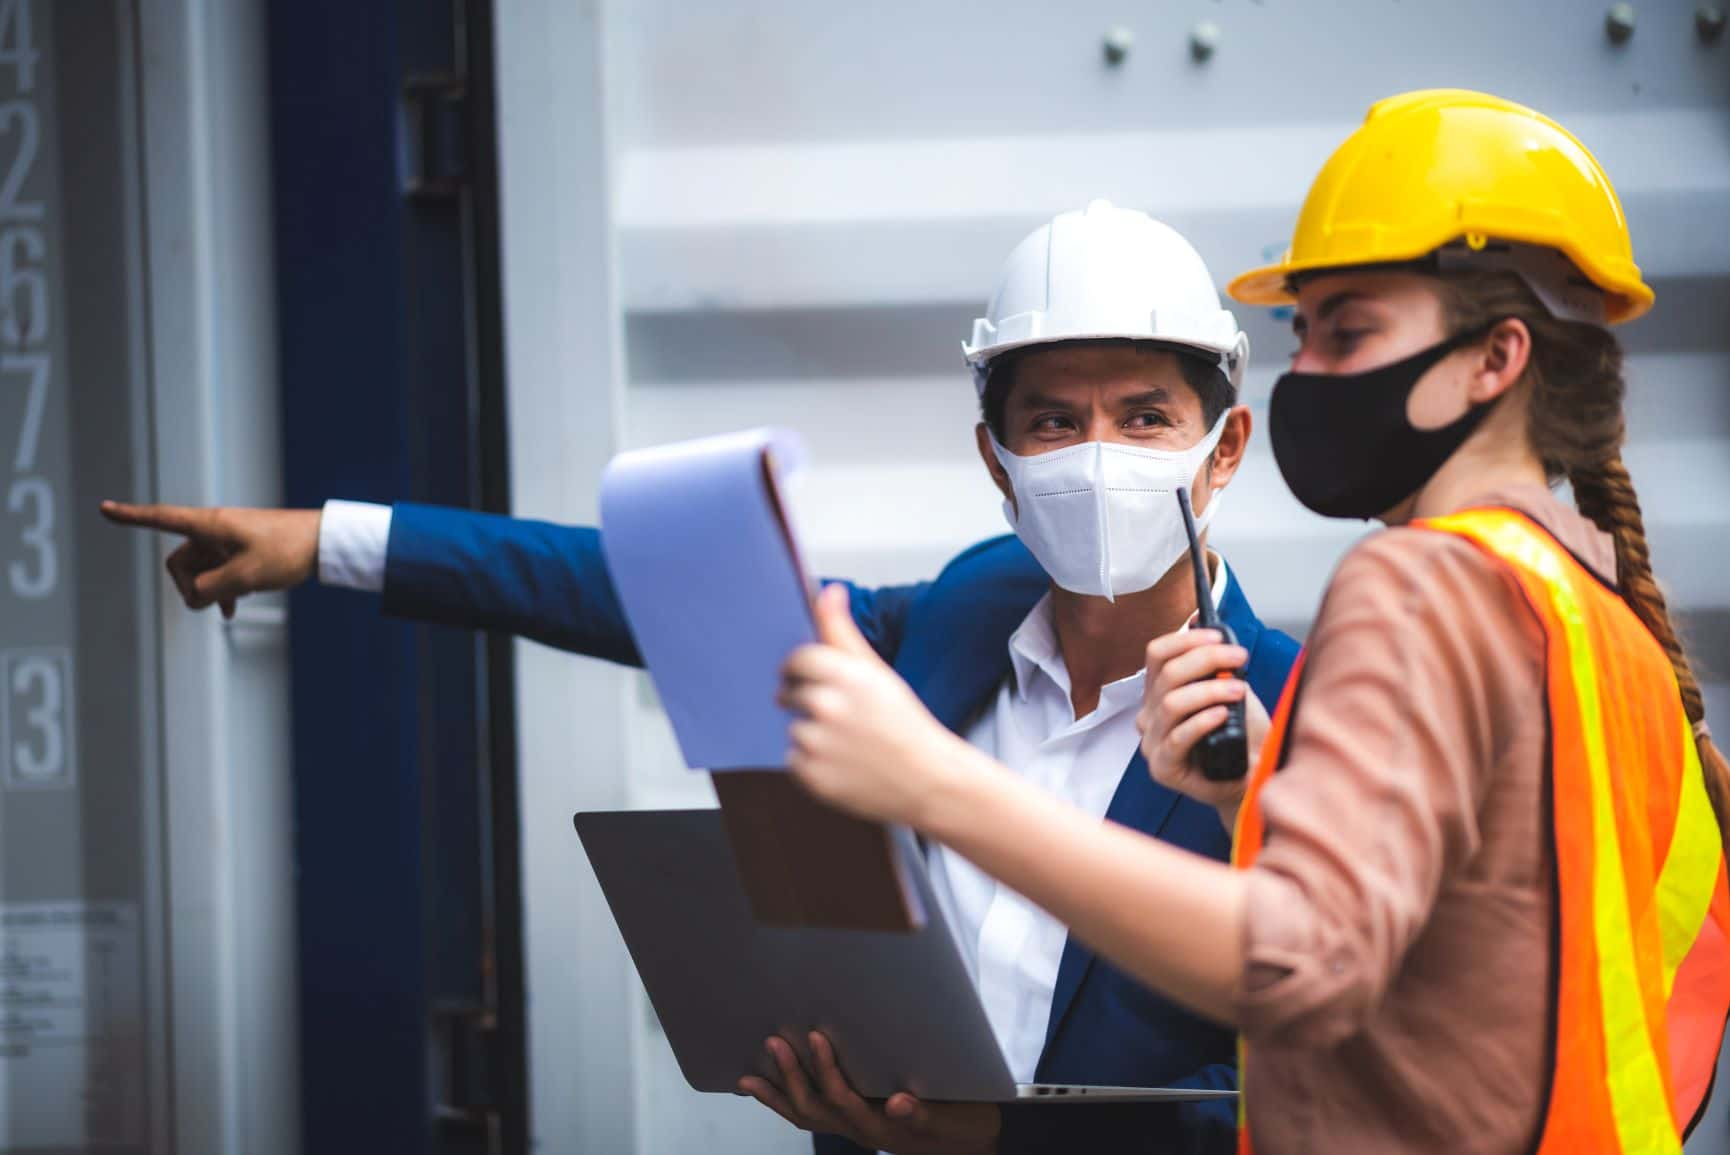 man and woman in hard hats conducting inspection